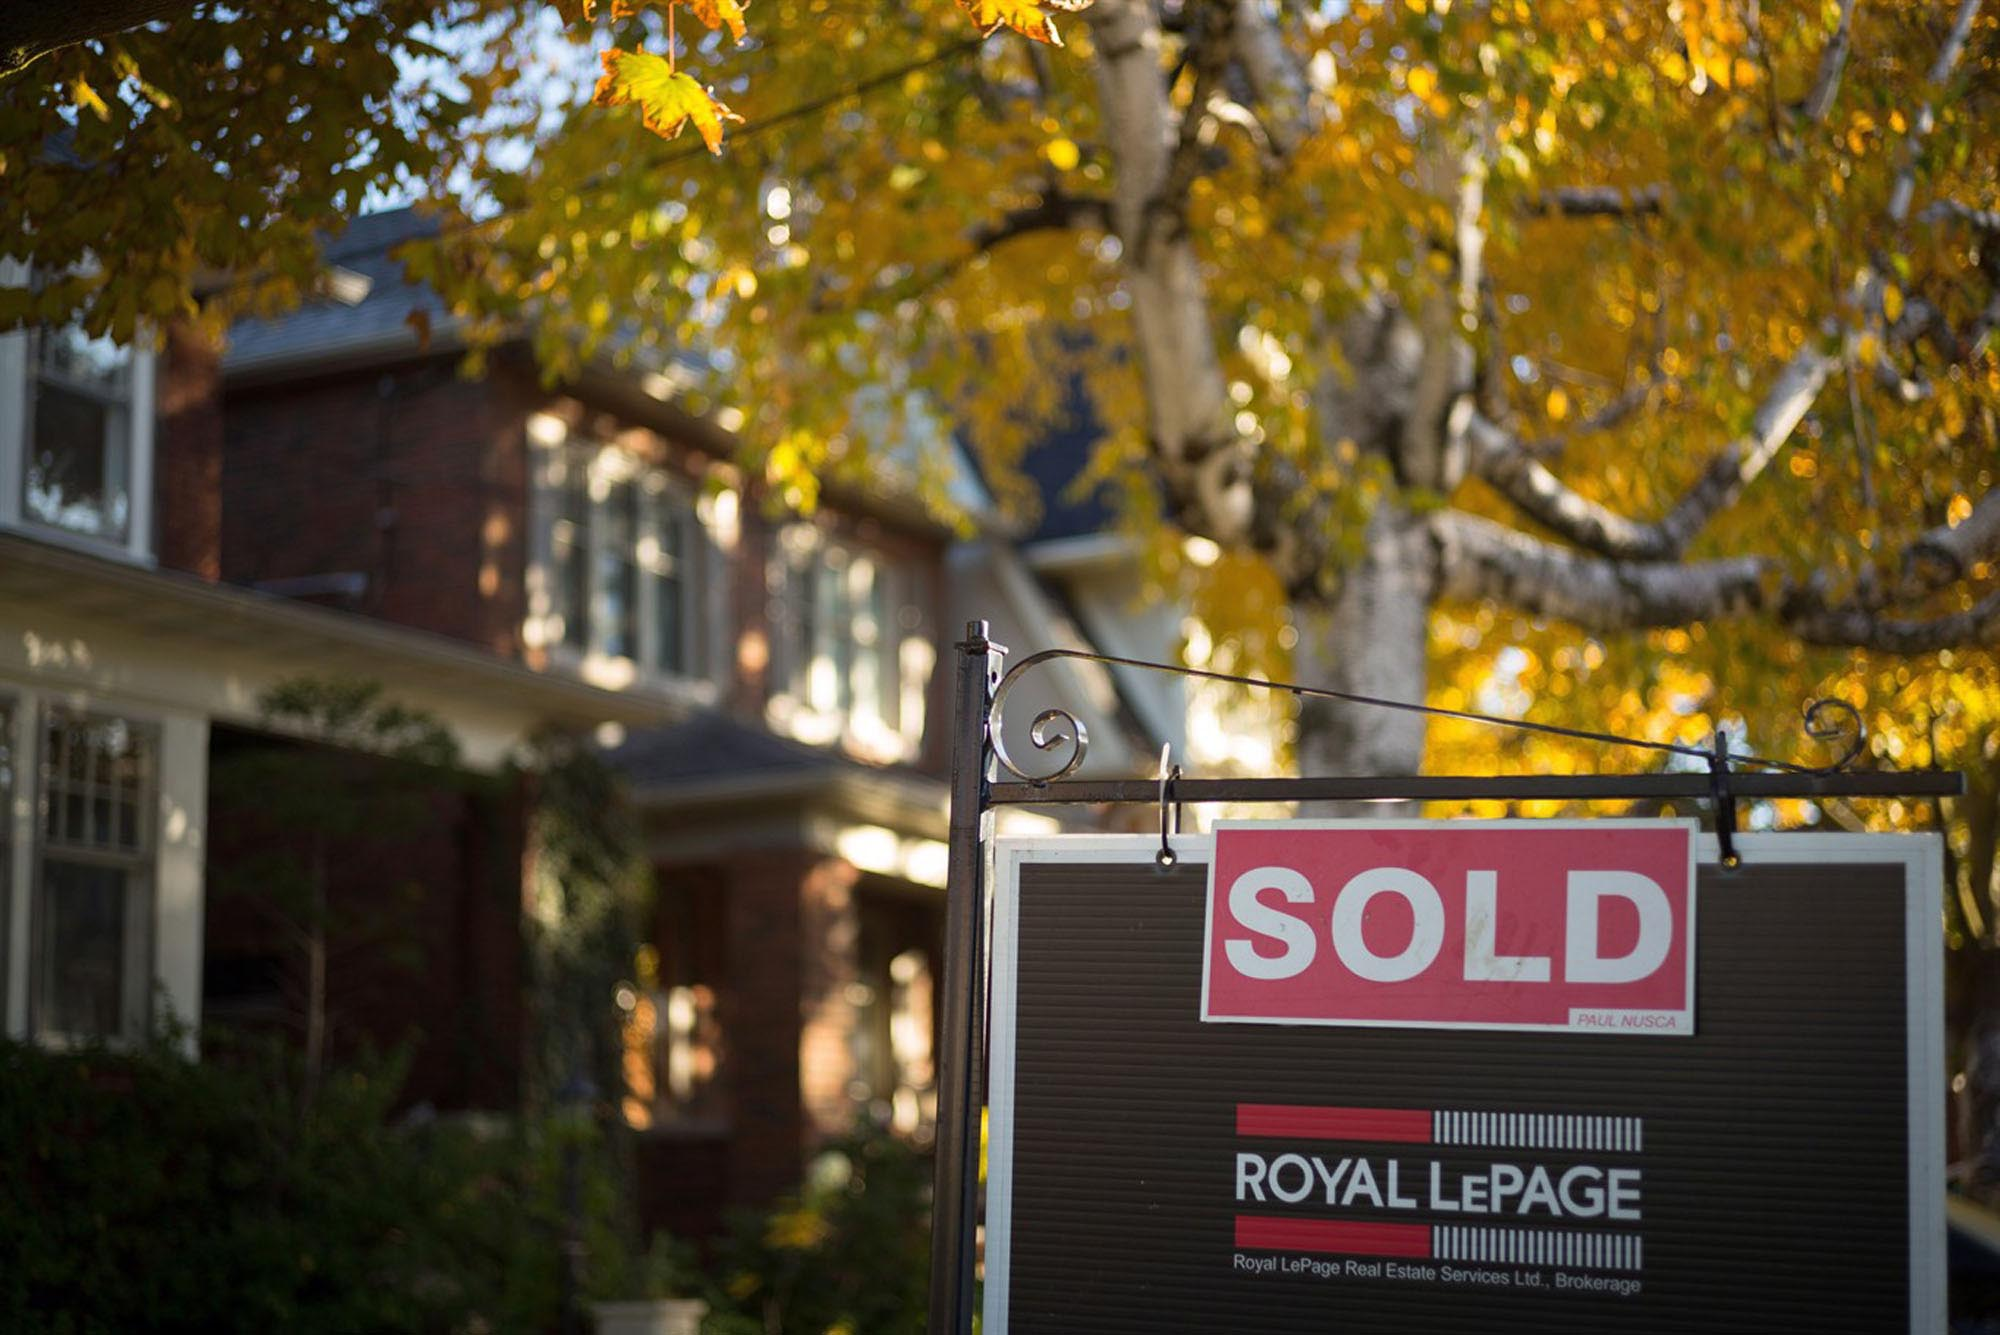 Royal LePage Market Forecast: National Home Prices to Show Remarkable Resilience in 2020